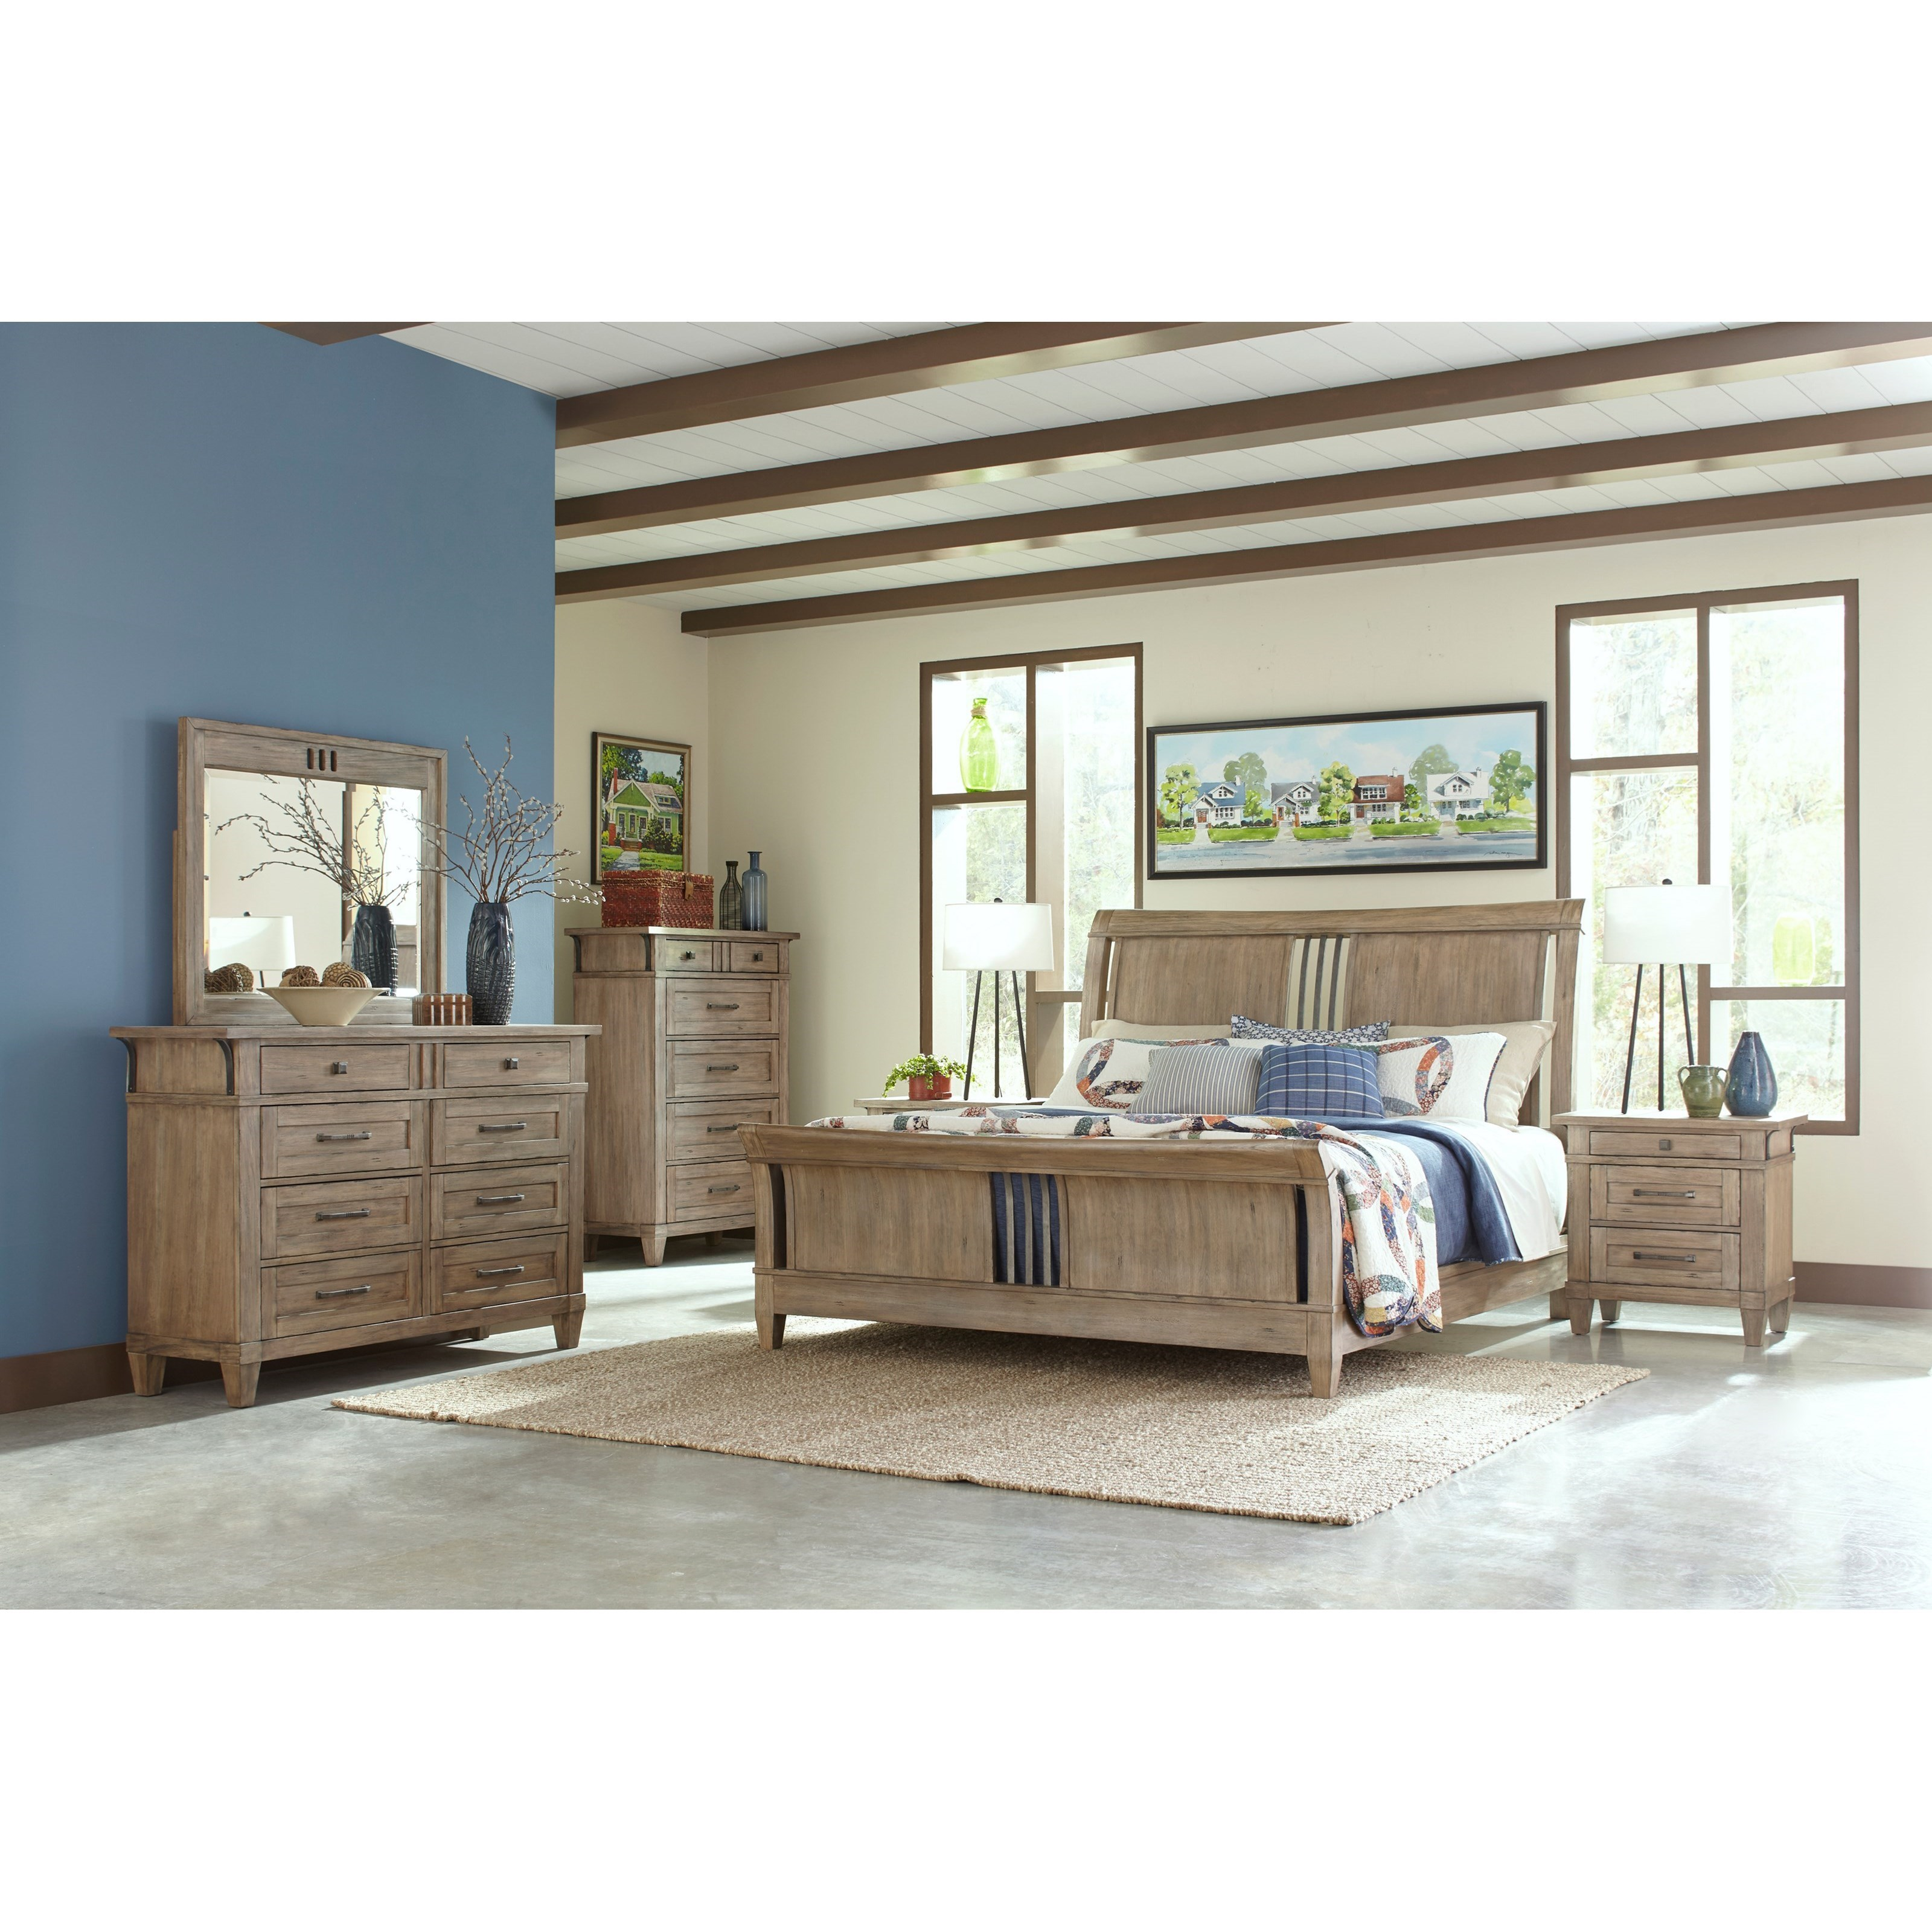 Reflections King Bedroom Group By Carolina Preserves By Klaussner